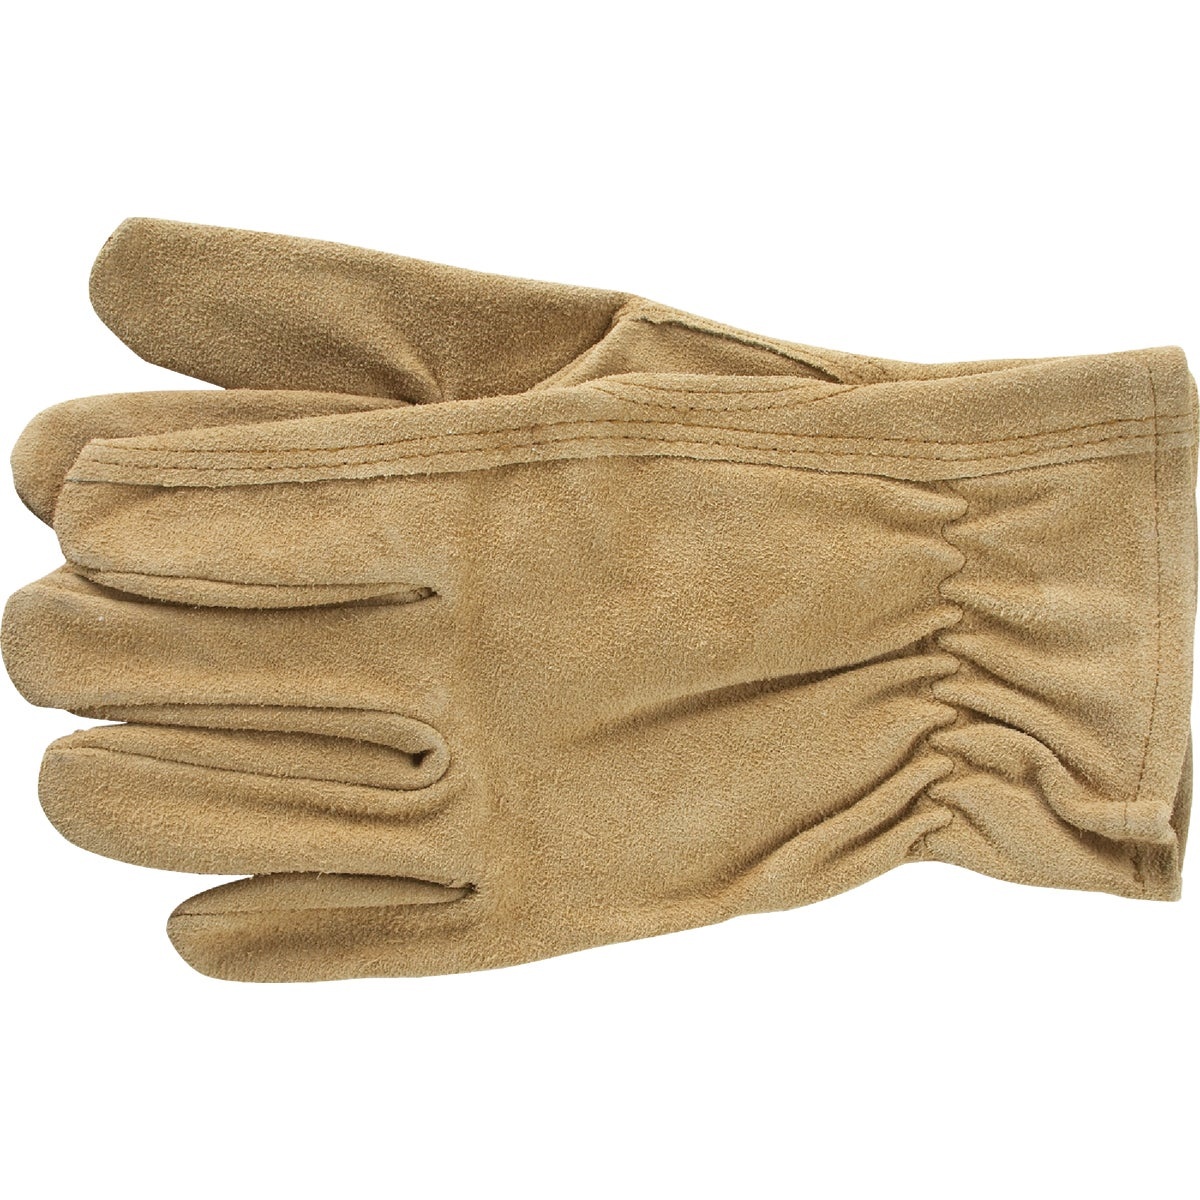 LRG SUEDE LEATHER GLOVE - 722987 by Do it Best